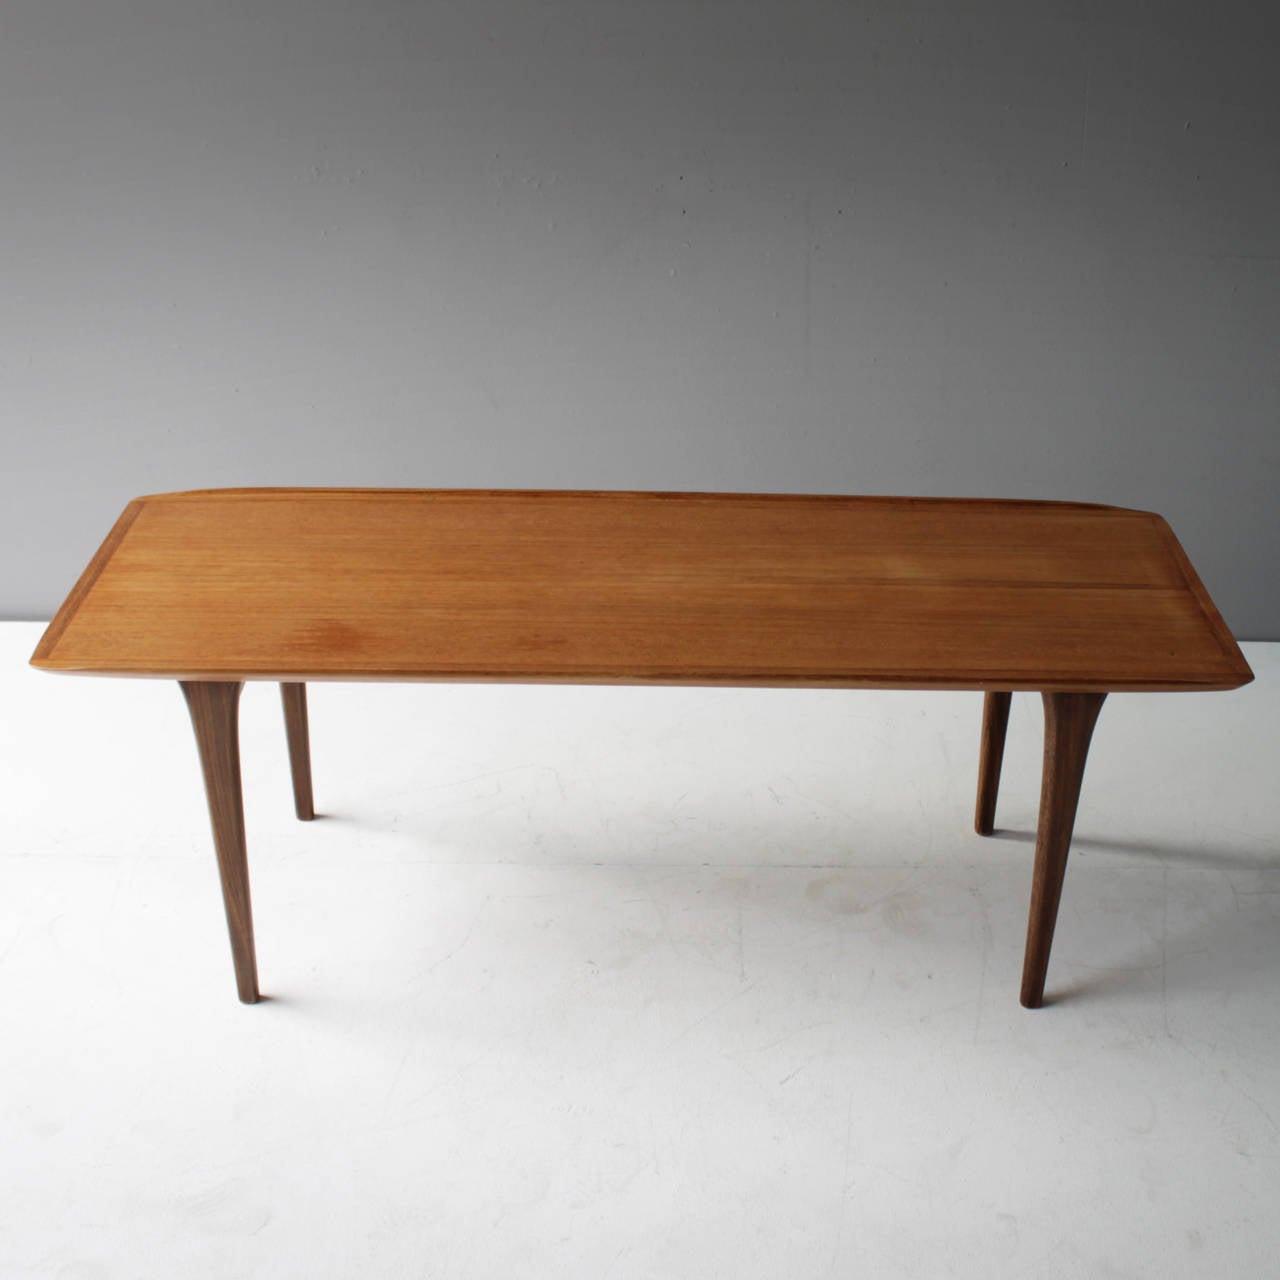 Danish Teak Coffee Table In The Manner Of Finn Juhl For Sale At 1stdibs